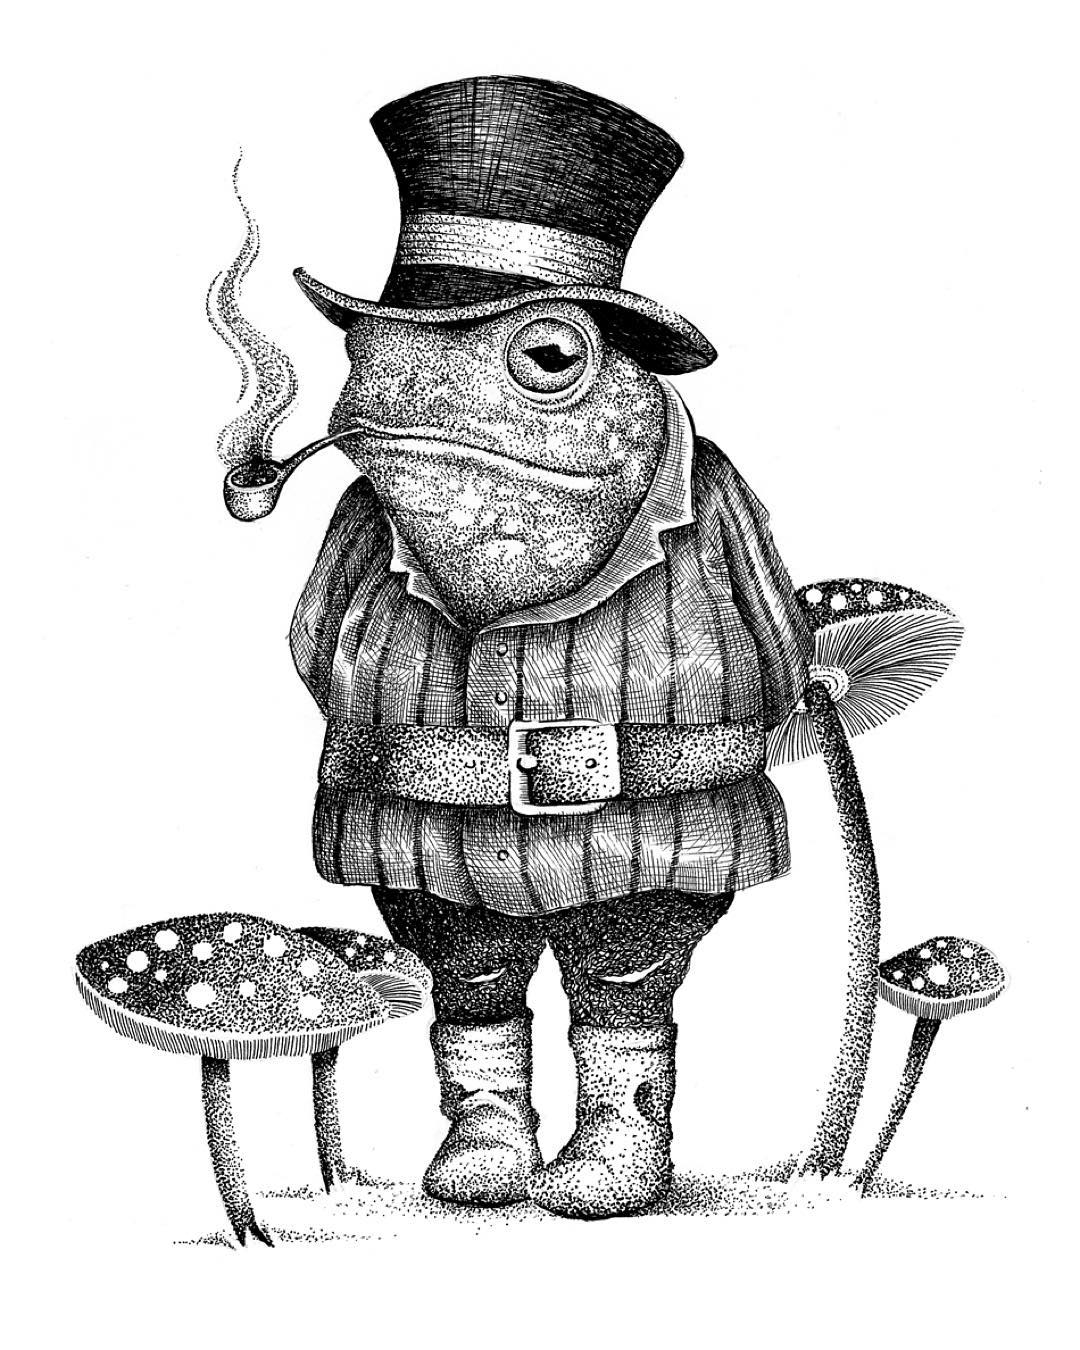 12-Mister-Frog-Thiago-Bianchini-Eclectic-Collection-of-Drawings-and-Illustrations-www-designstack-co